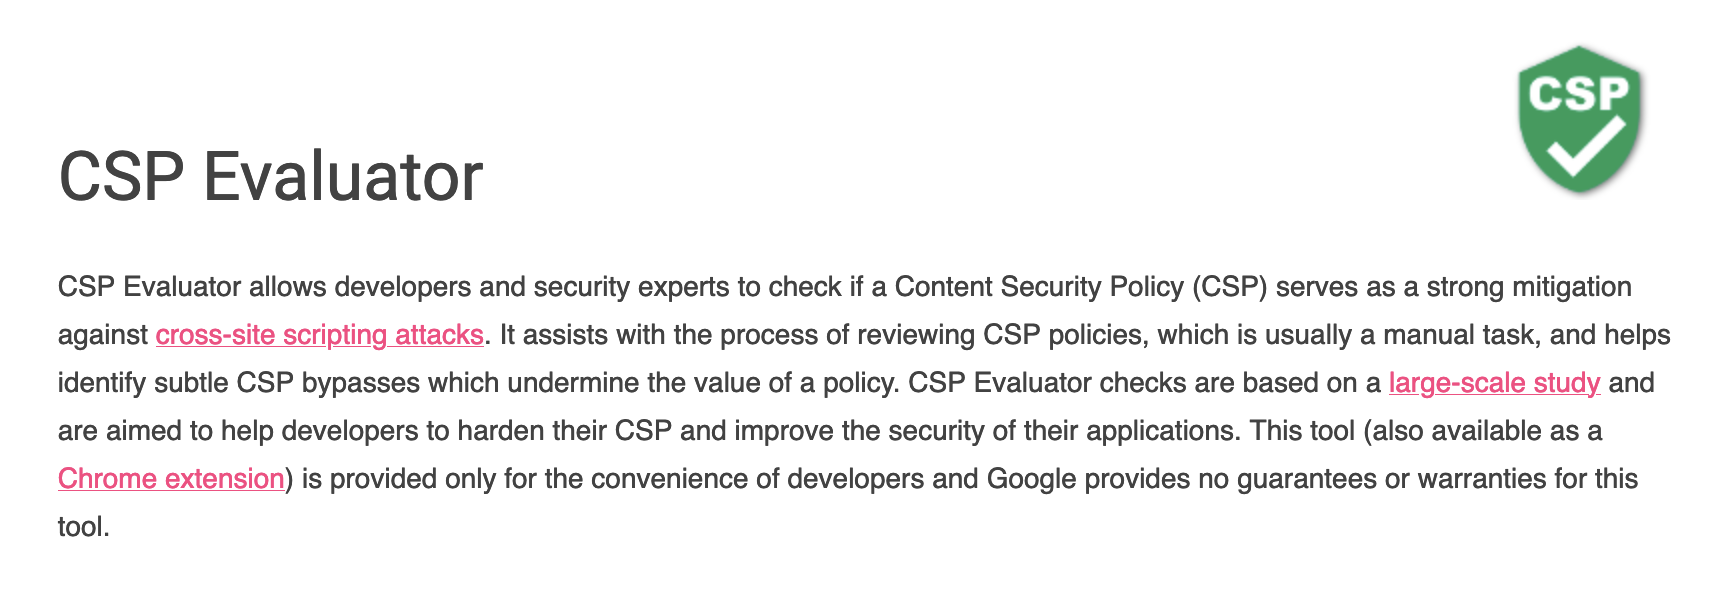 CSP Evaluator allows developers and security experts to check if a Content Security Policy (CSP) serves as a strong mitigation against cross-site scripting attacks. It assists with the process of reviewing CSP policies, which is usually a manual task, and helps identify subtle CSP bypasses which undermine the value of a policy. CSP Evaluator checks are based on a large-scale study and are aimed to help developers to harden their CSP and improve the security of their applications. This tool (also available as a Chrome extension) is provided only for the convenience of developers and Google provides no guarantees or warranties for this tool.